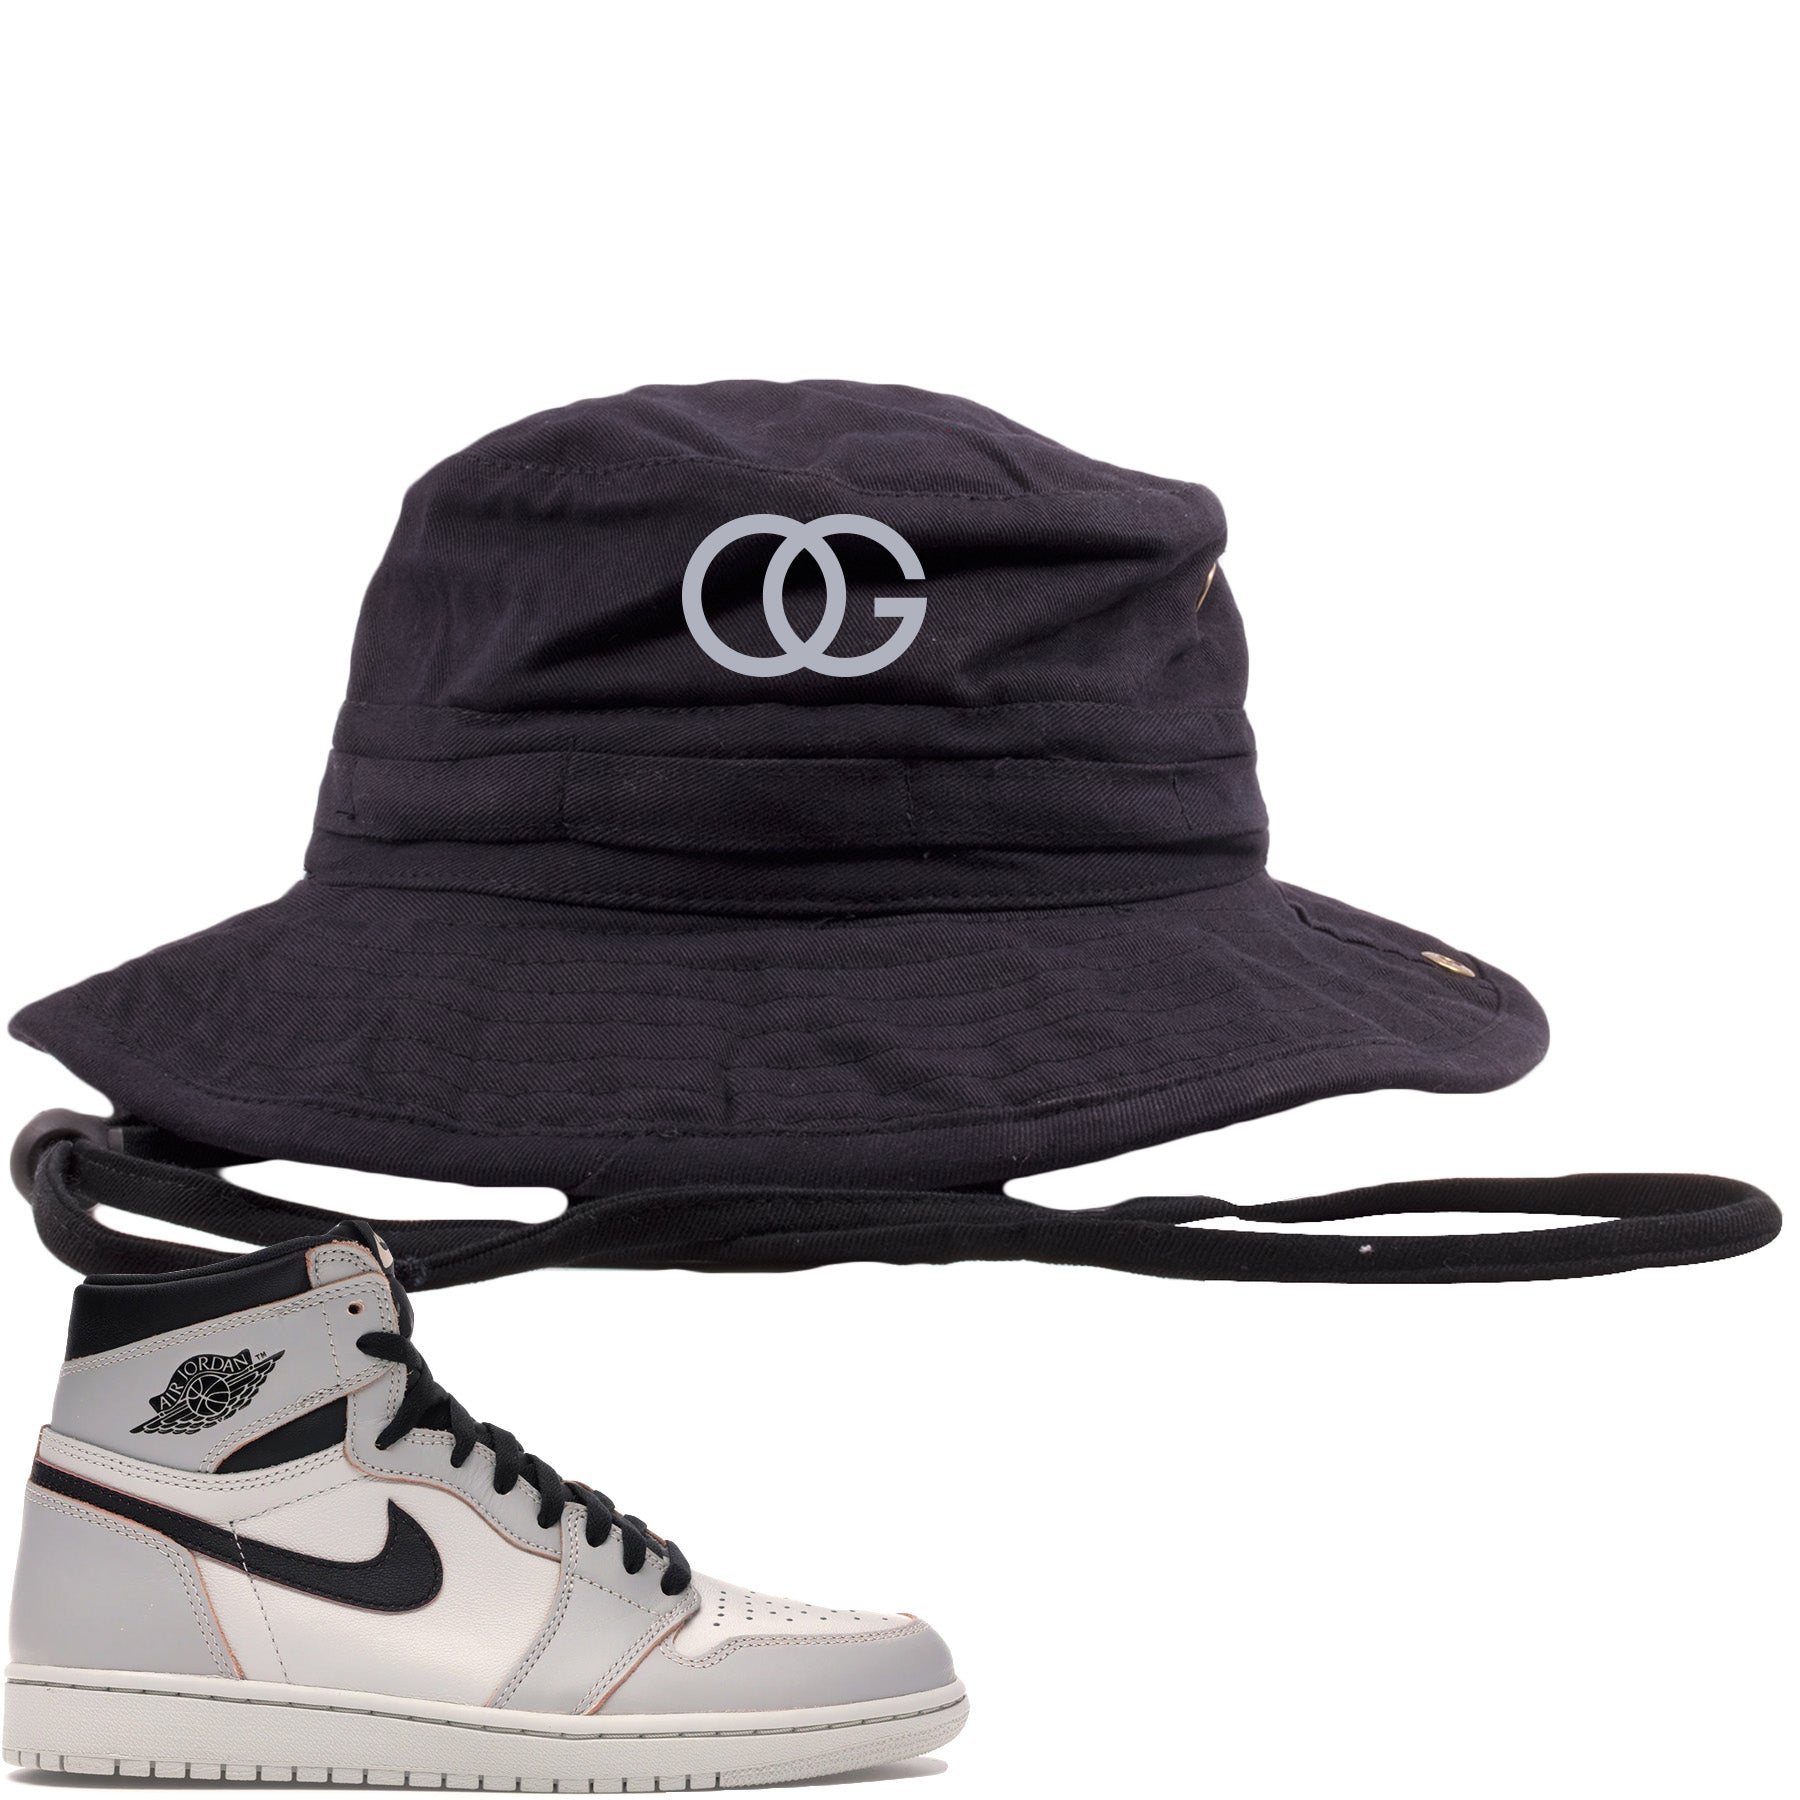 86f298d7688 This black and white bucket hat will match great with your Nike SB x Air  Jordan